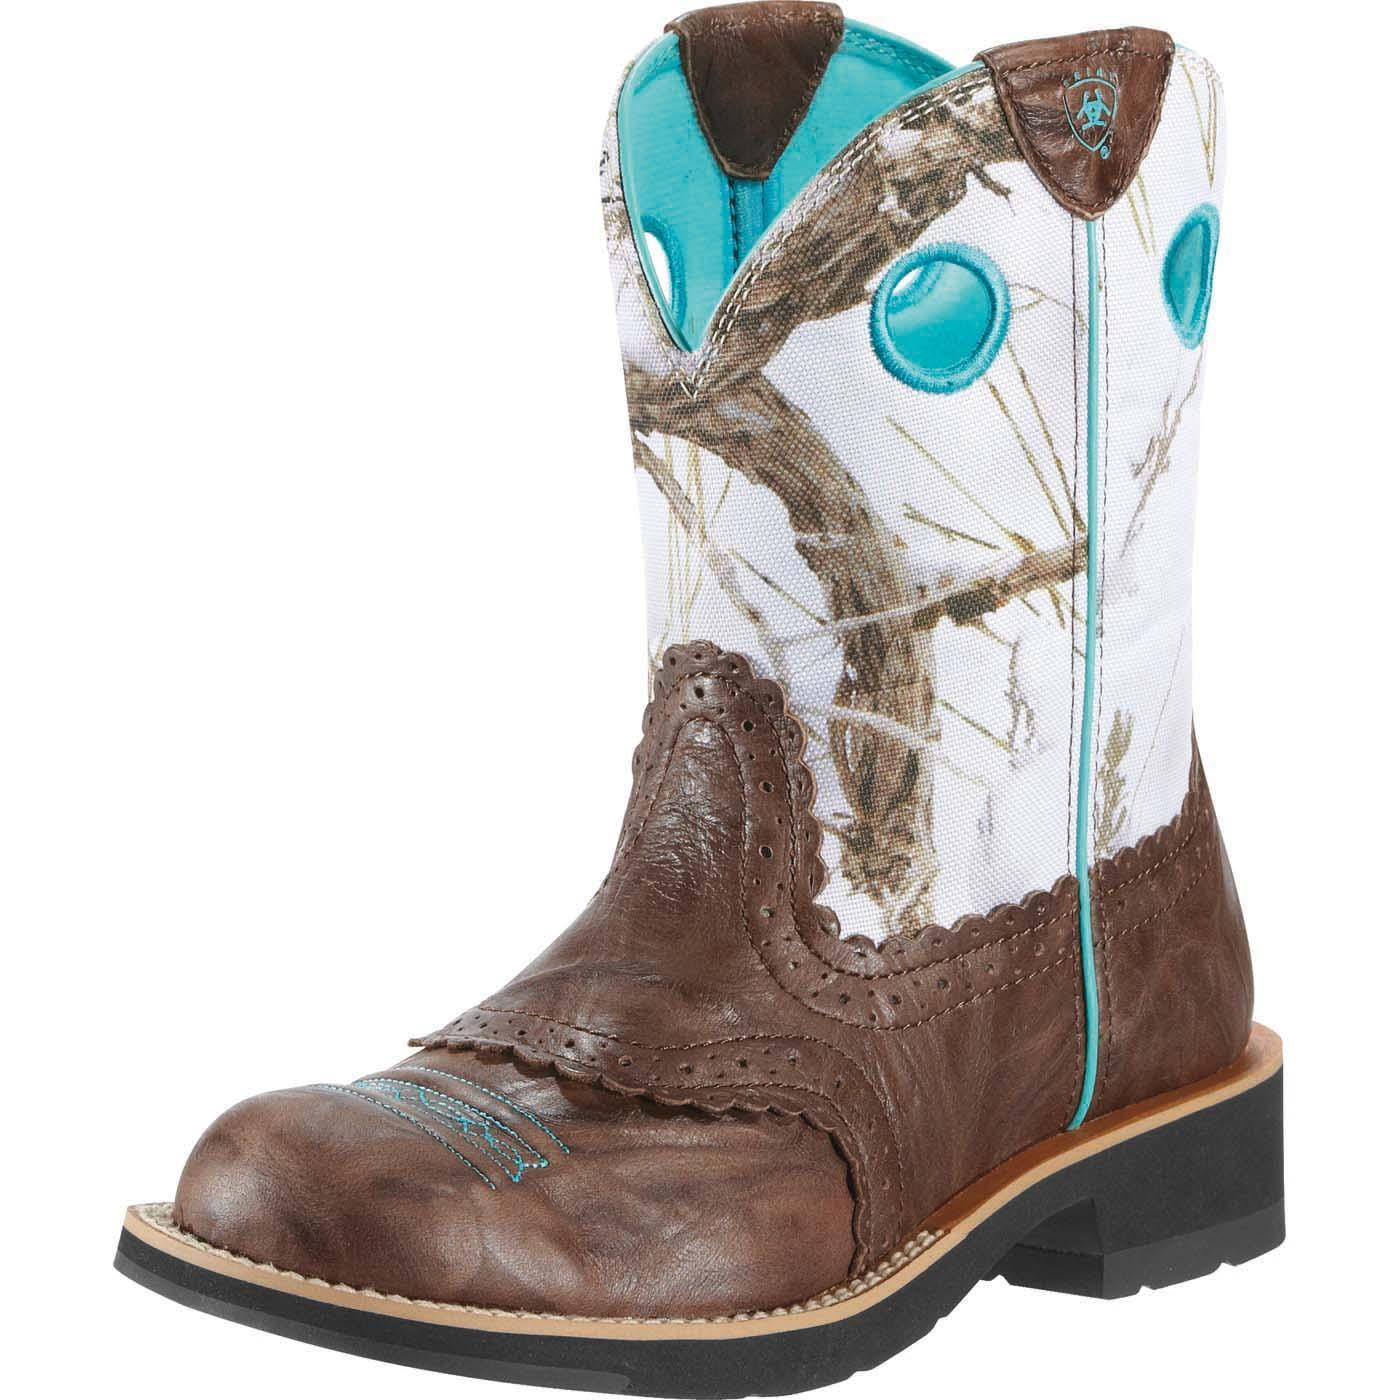 c47034acd9e86 Ariat Women's Fatbaby Cowgirl Western BootAriat Women's Fatbaby Cowgirl  Western Boot,